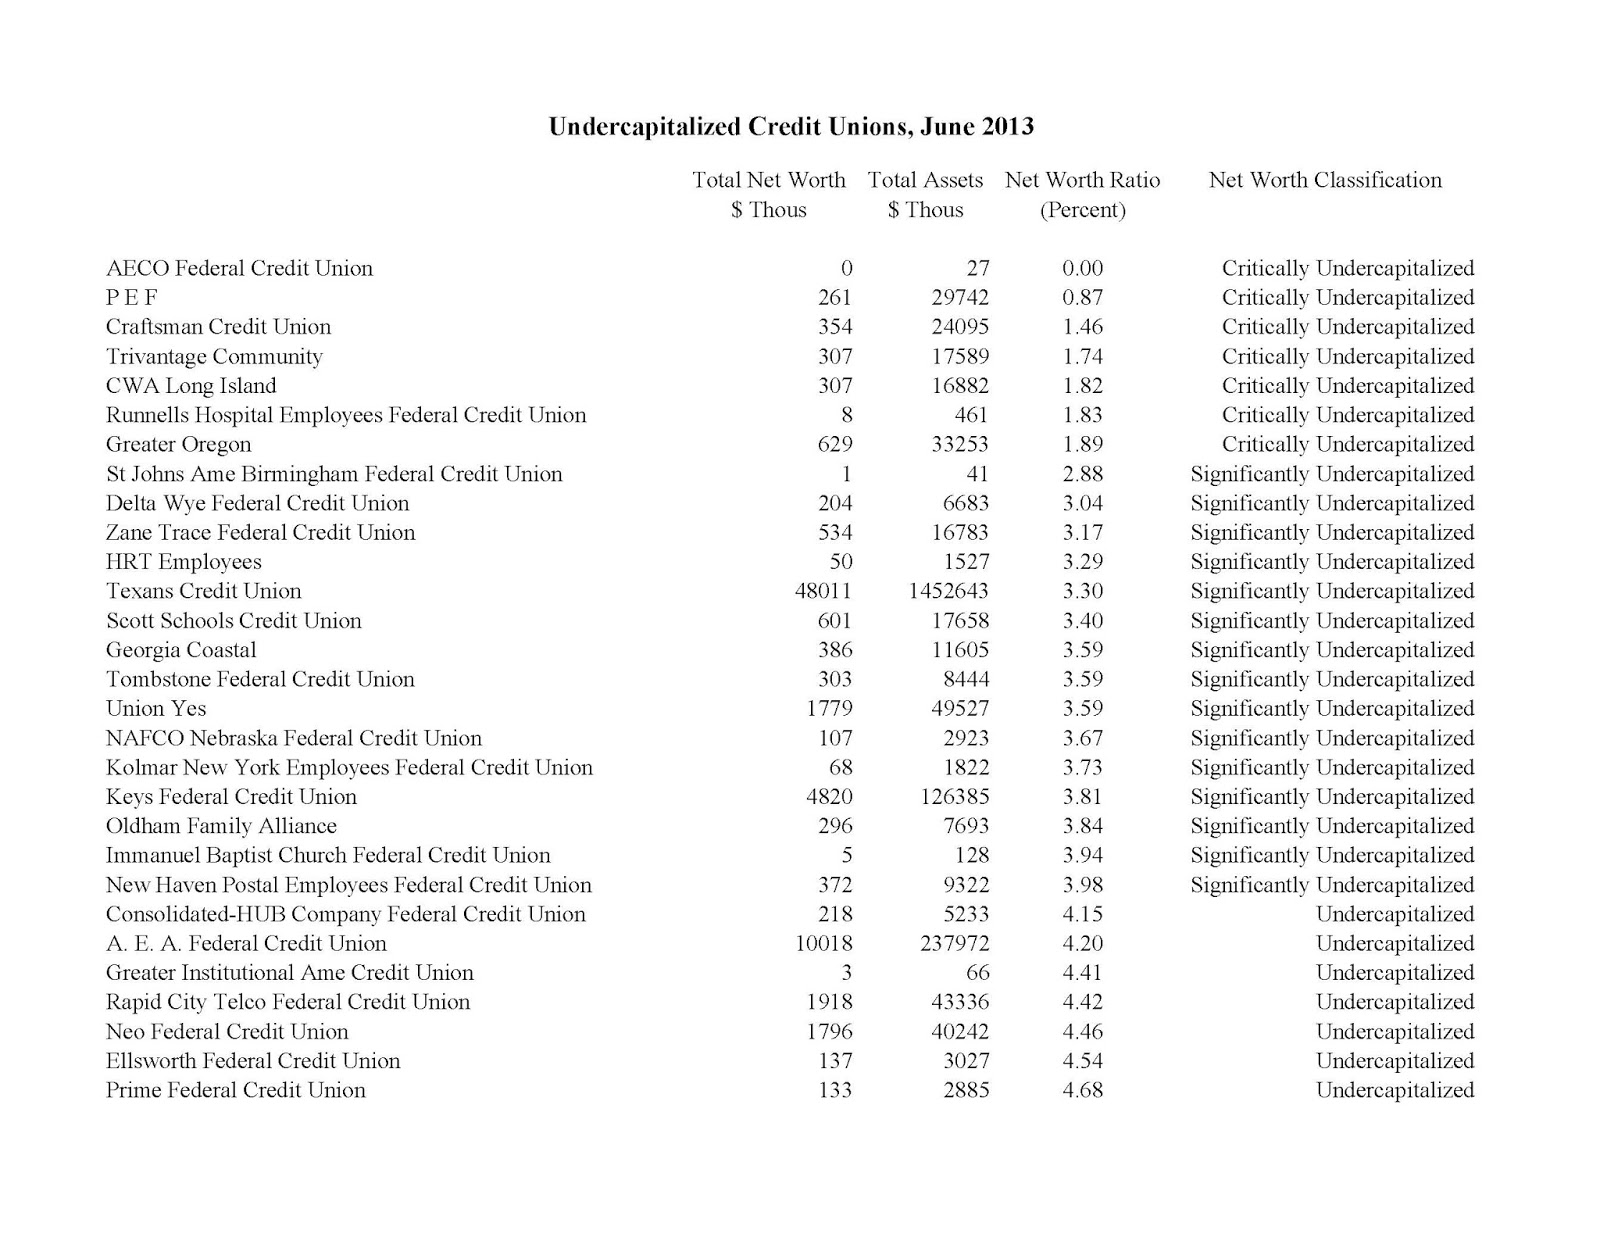 Kinecta bank statement - Undercapitalized Credit Unions June 2013